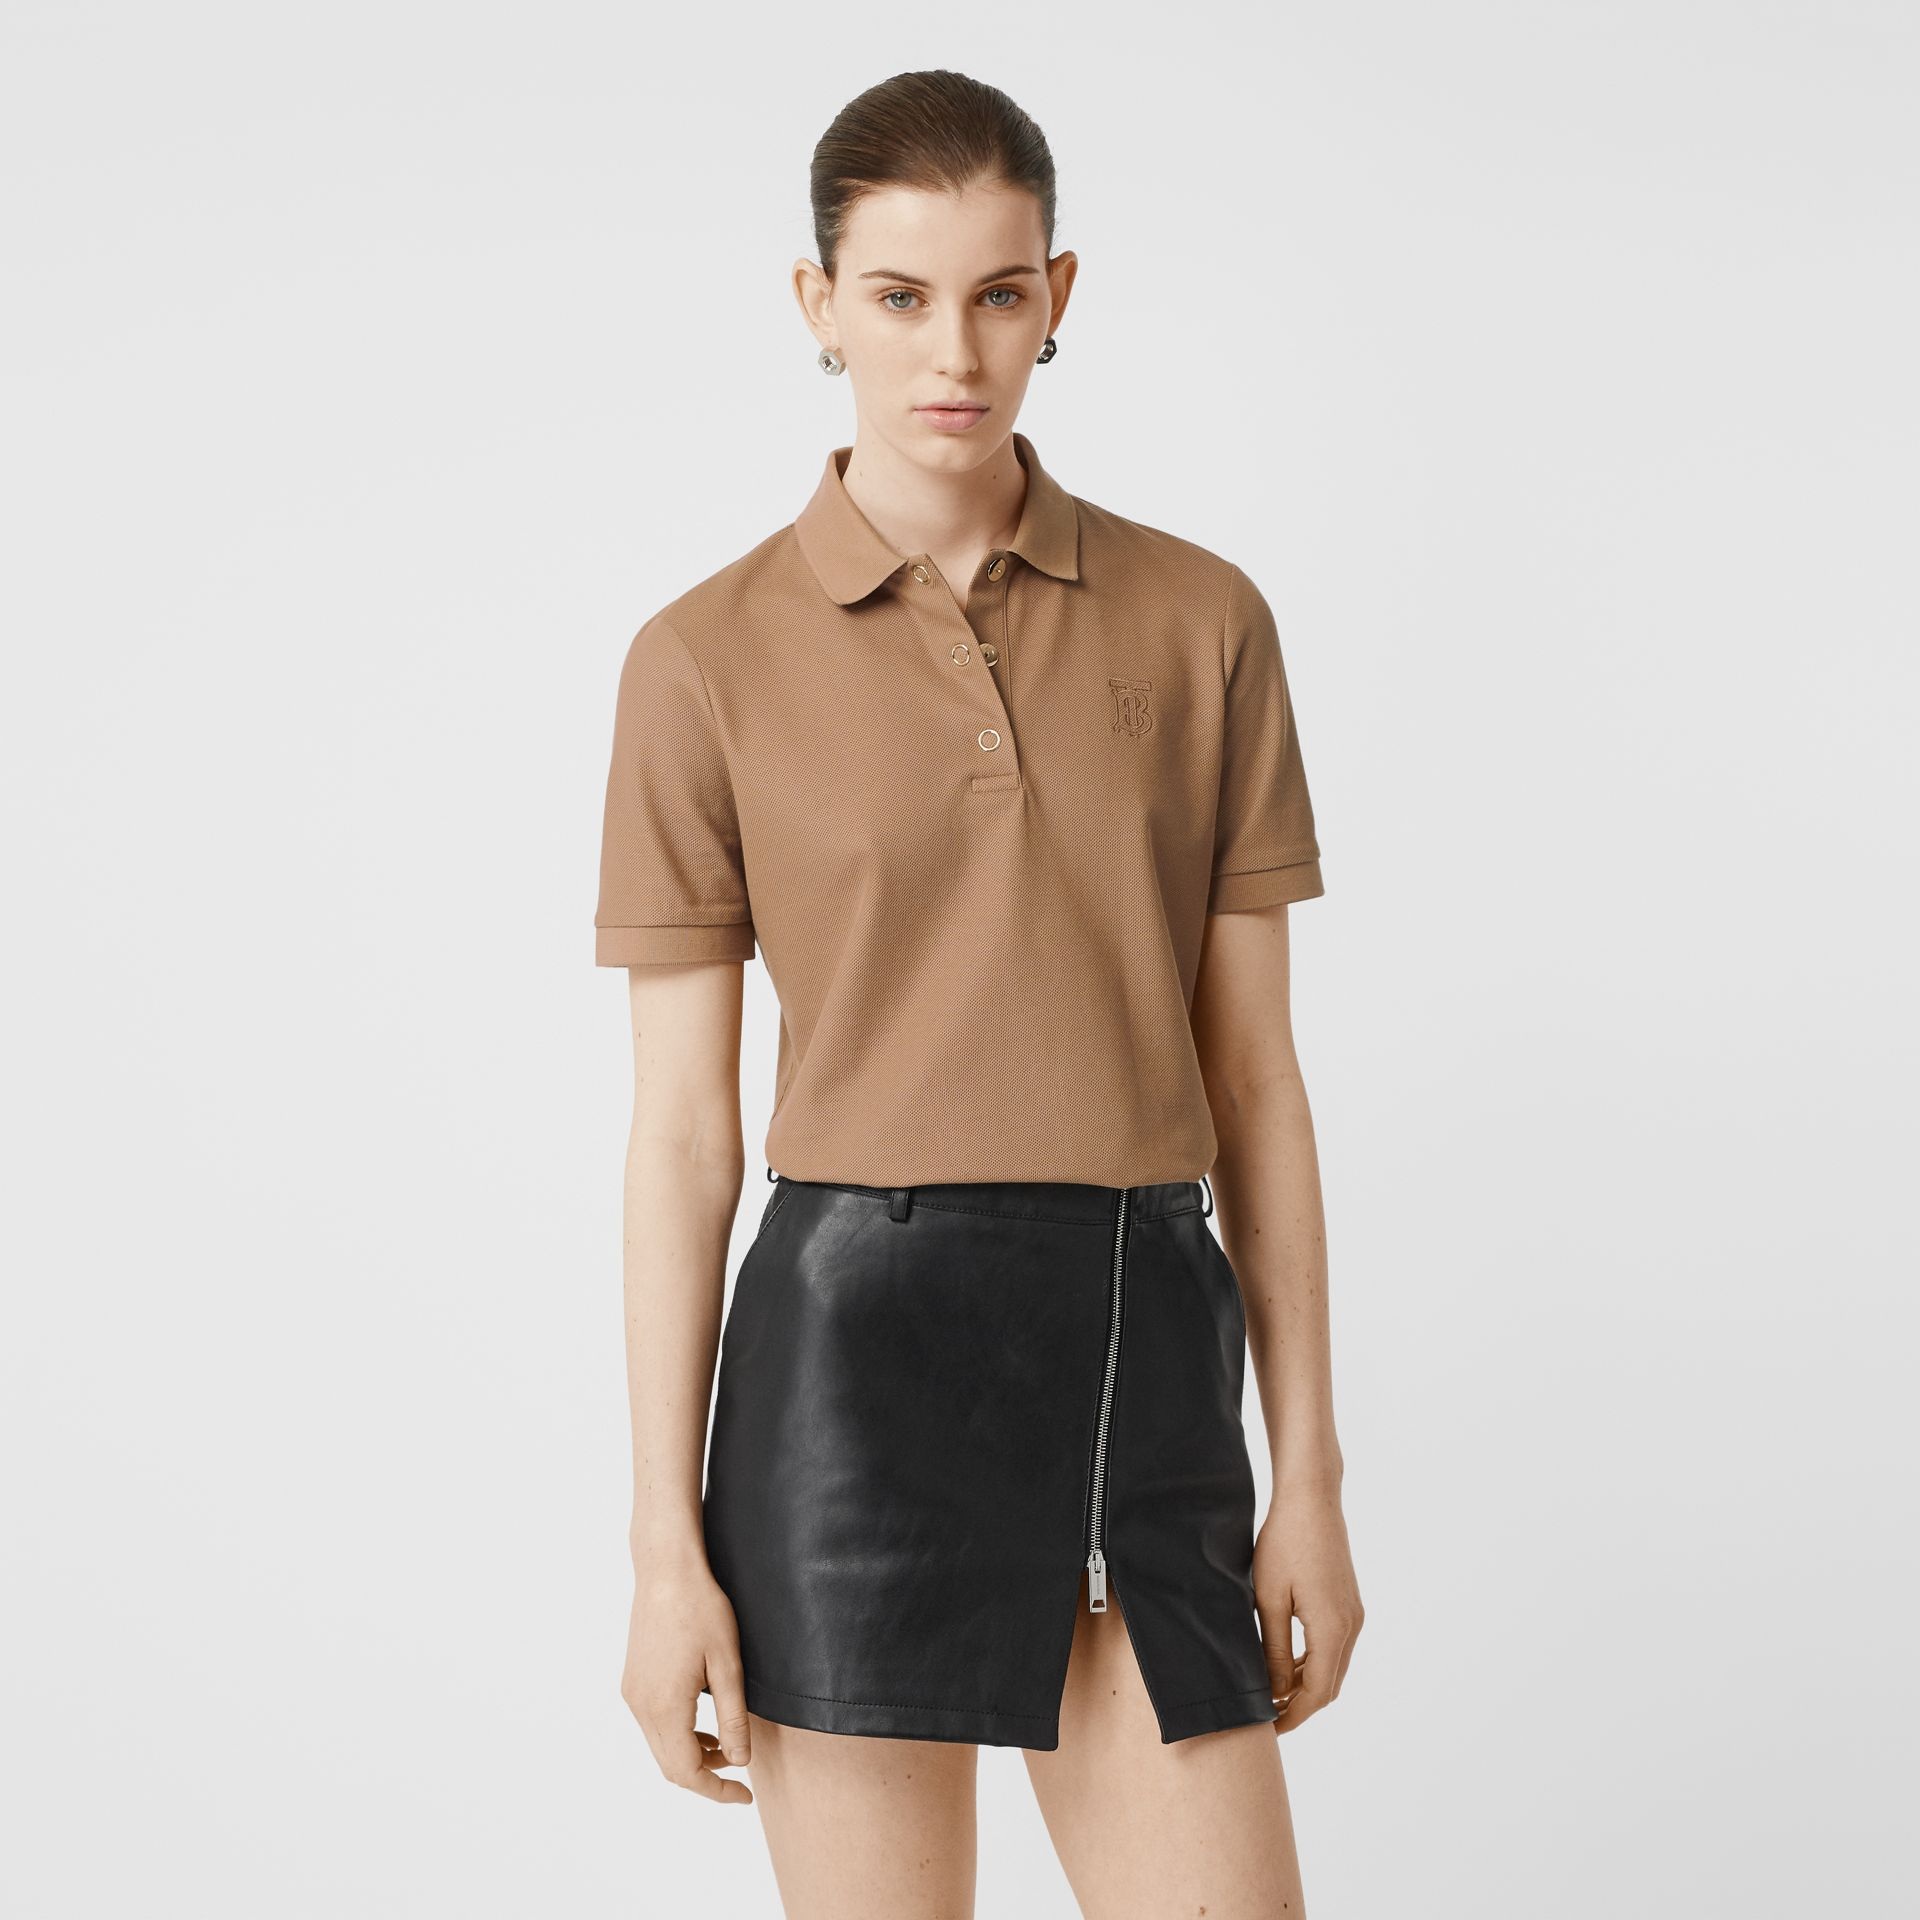 Monogram Motif Cotton Piqué Polo Shirt in Camel - Women | Burberry Singapore - gallery image 4